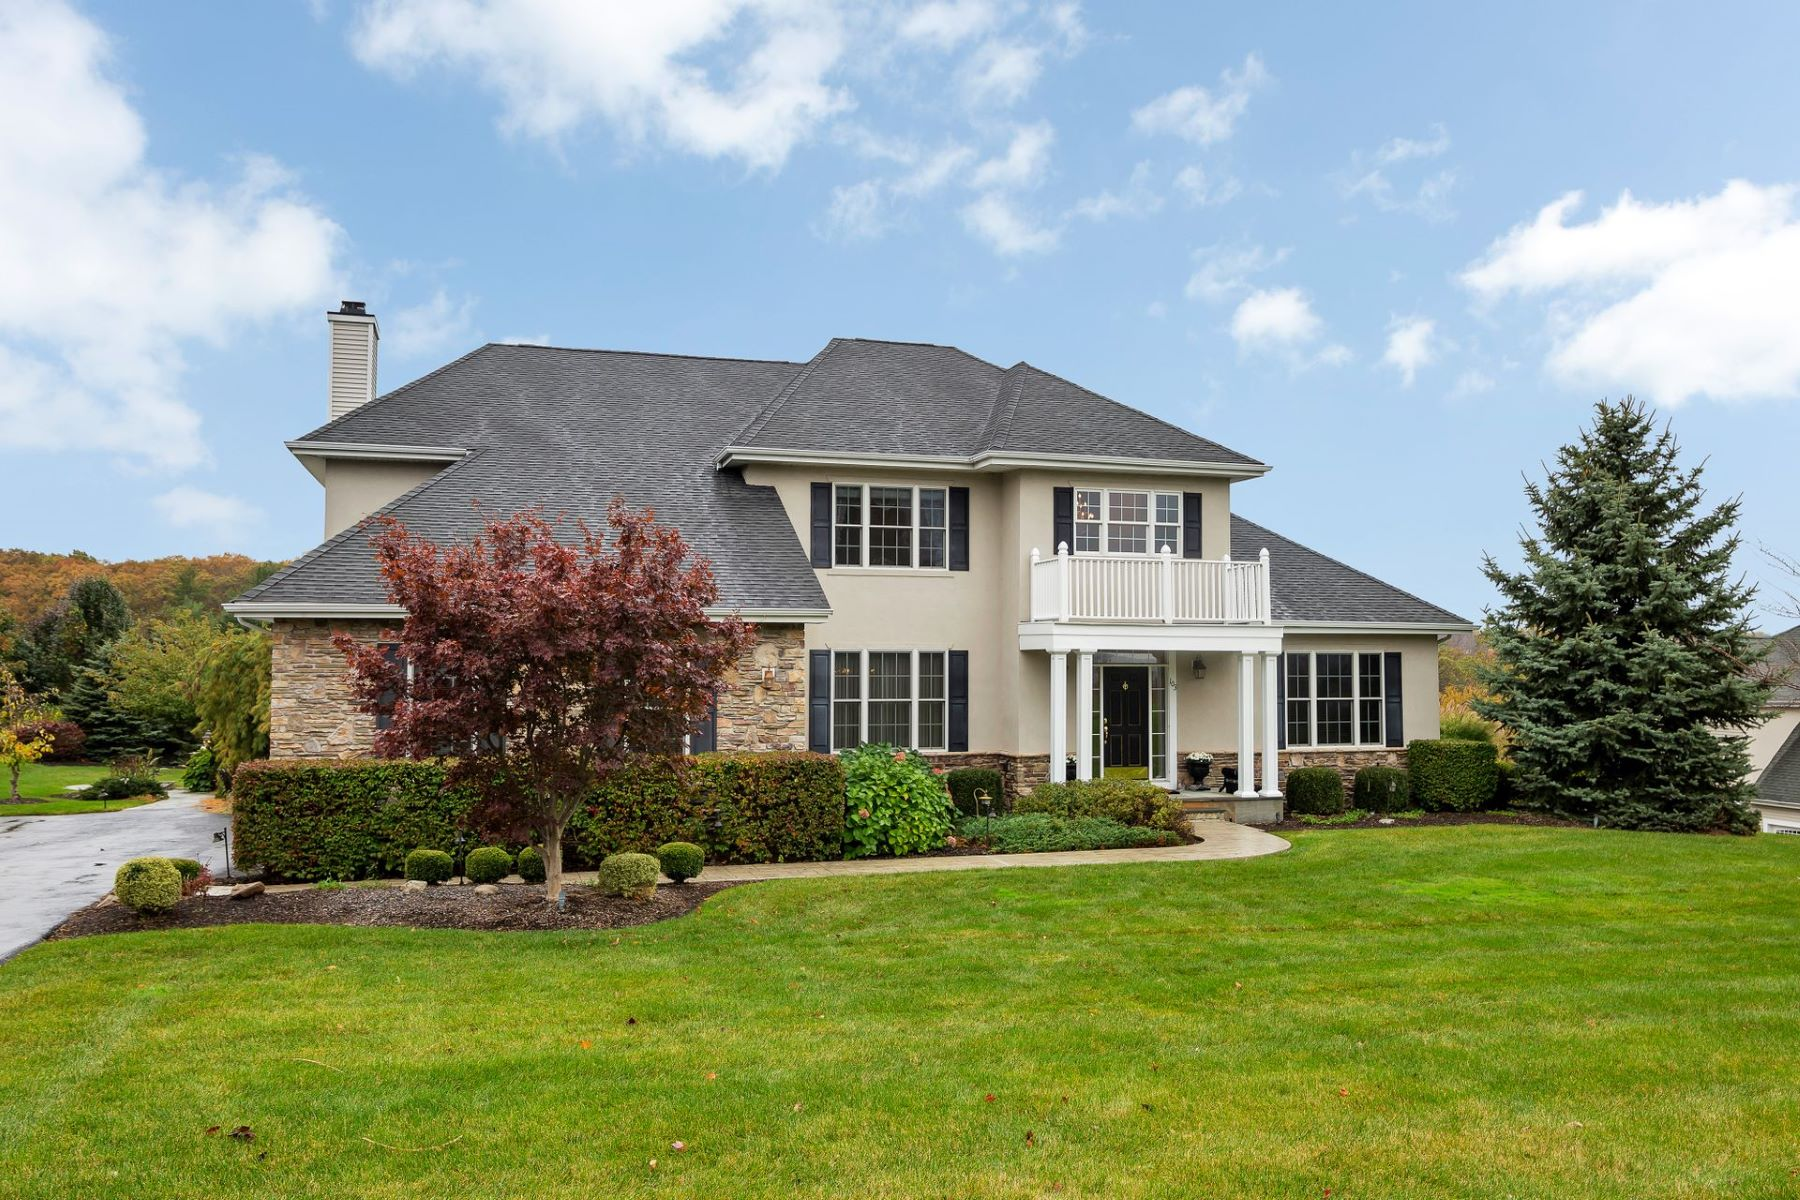 Single Family Home for Sale at Greenview at Mansion Ridge 103 Mansion Ridge Boulevard, Monroe, New York, 10950 United States